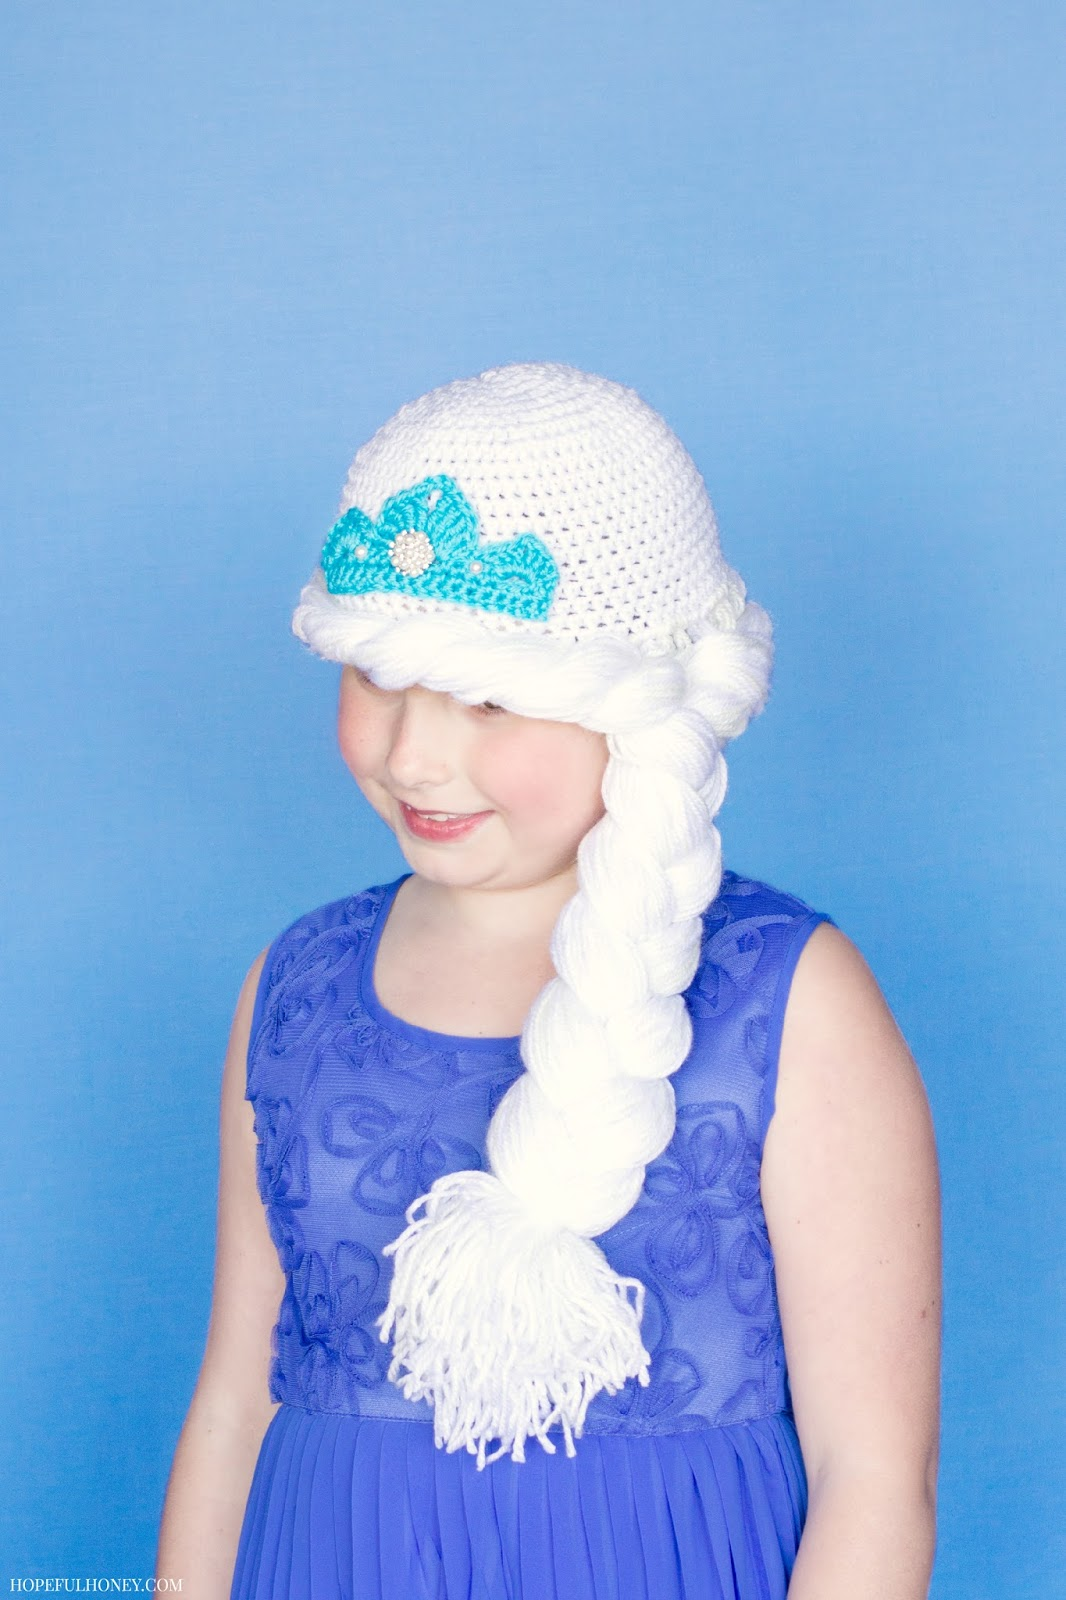 Hopeful Honey Craft, Crochet, Create: Frozen Princess ...